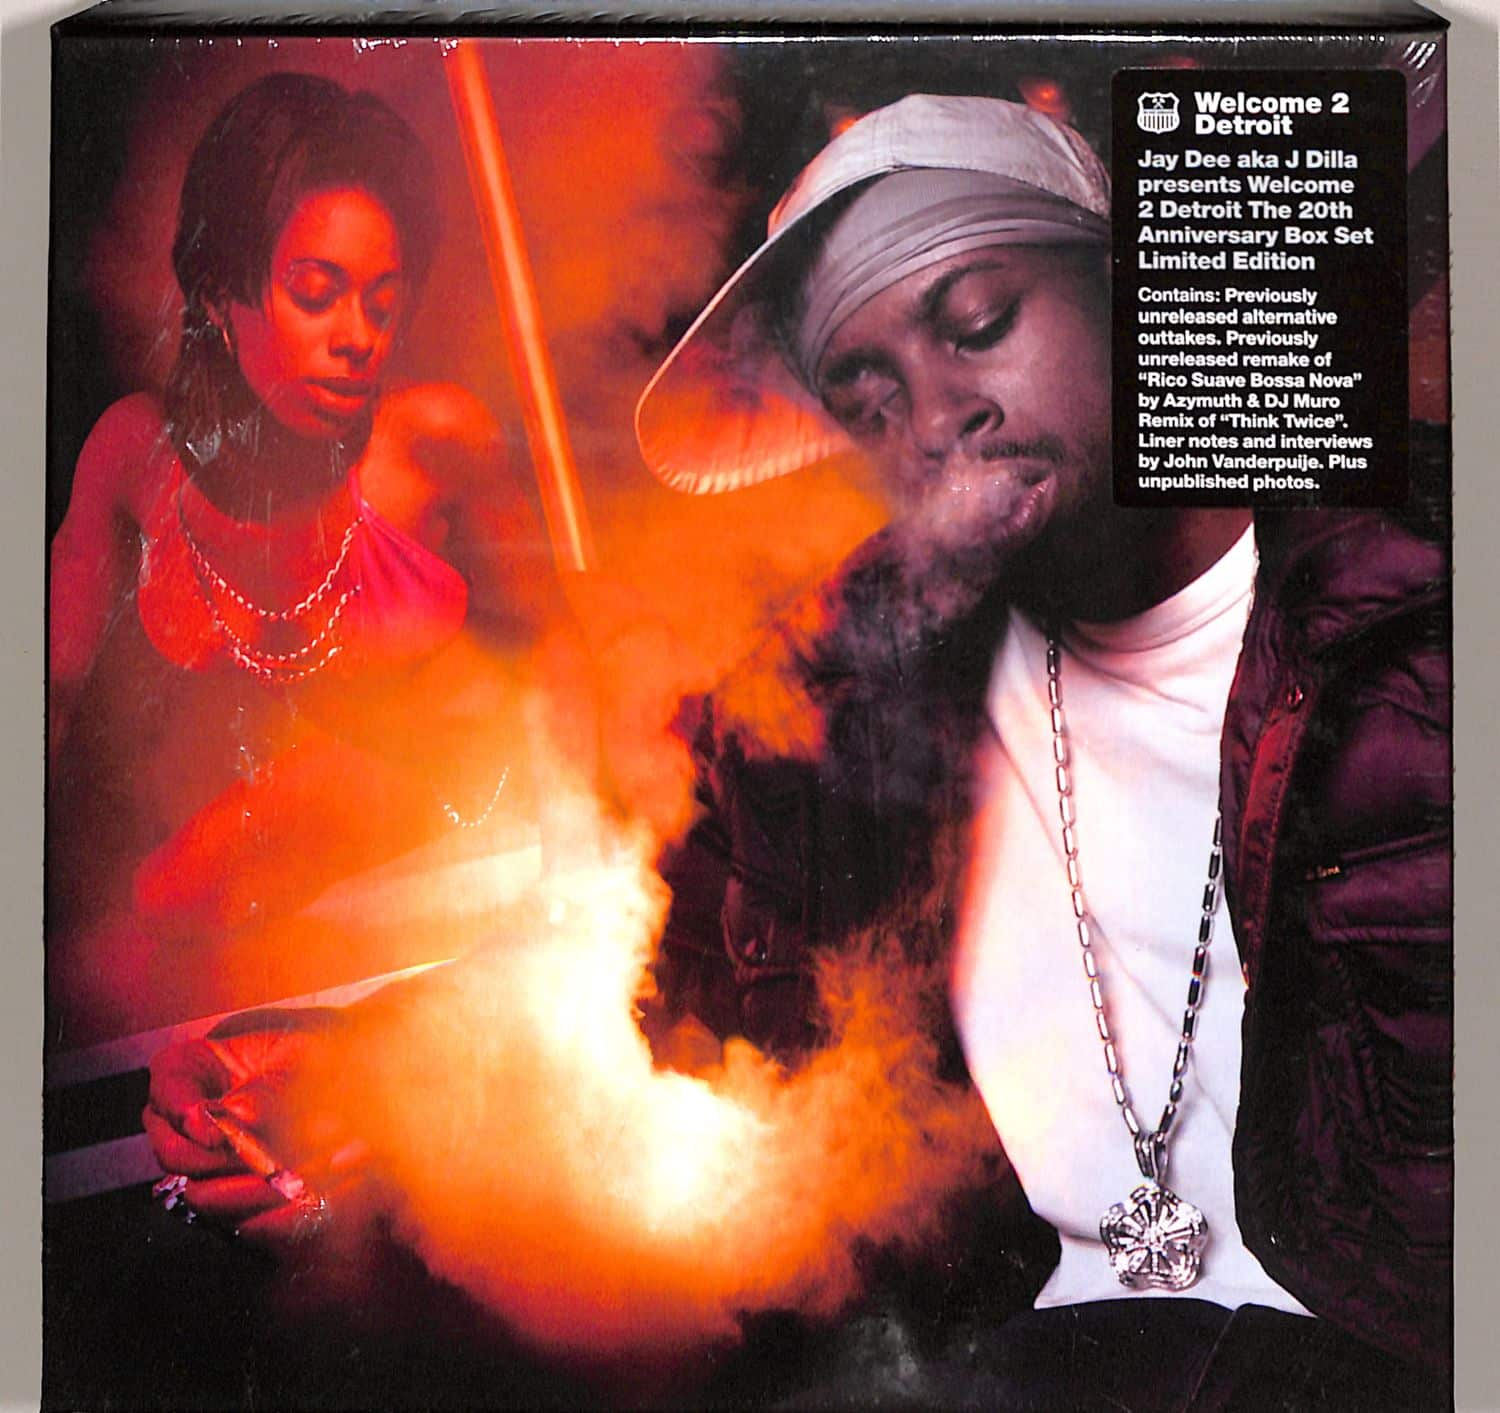 Jay Dee aka J Dilla - WELCOME 2 DETROIT - THE 20TH ANNIVERSARY EDITION